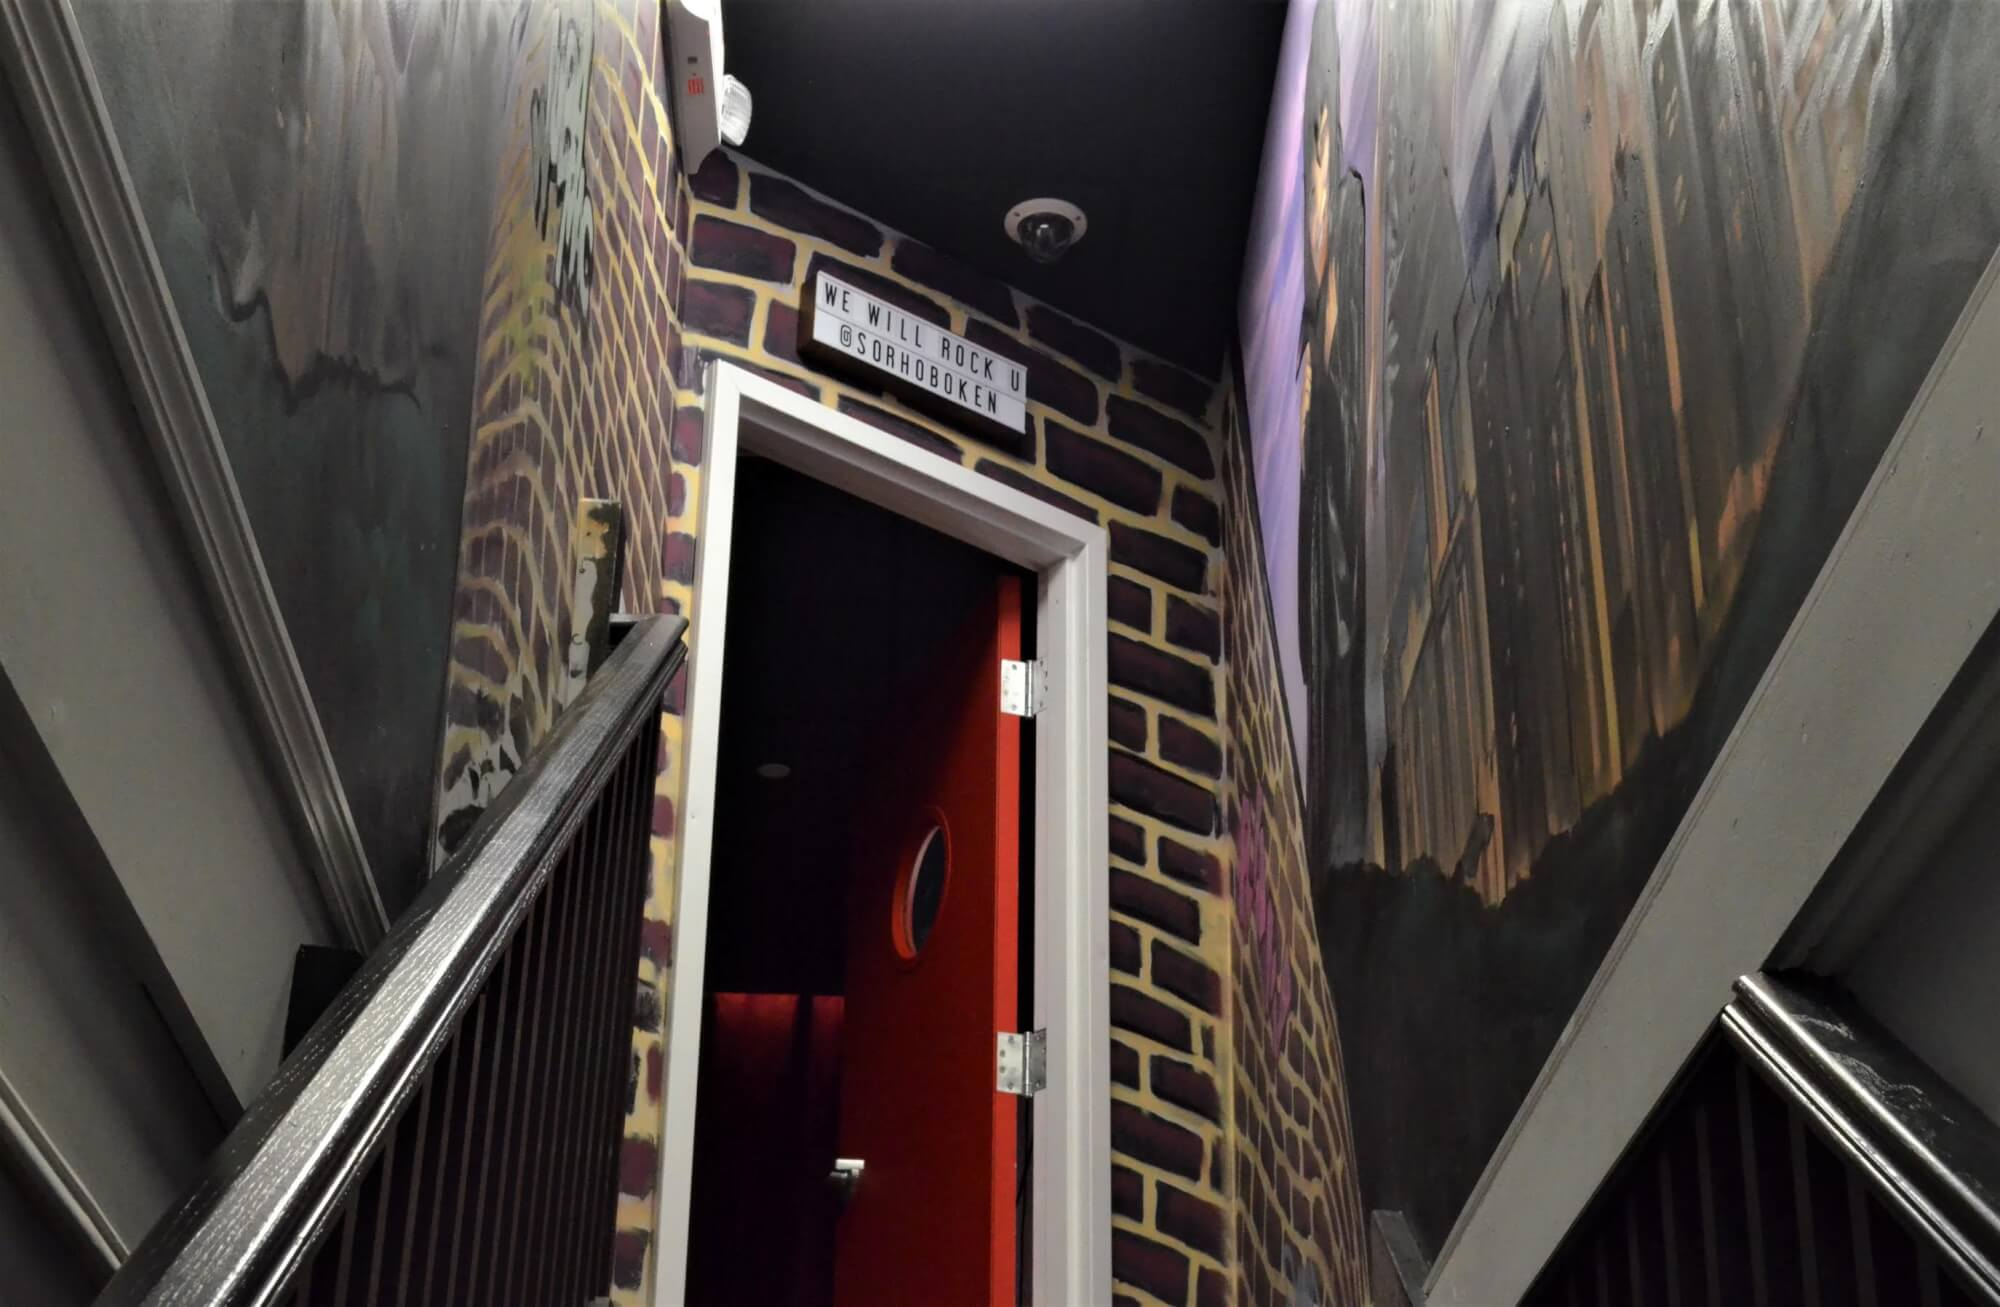 This is your view when entering the club/stage room.